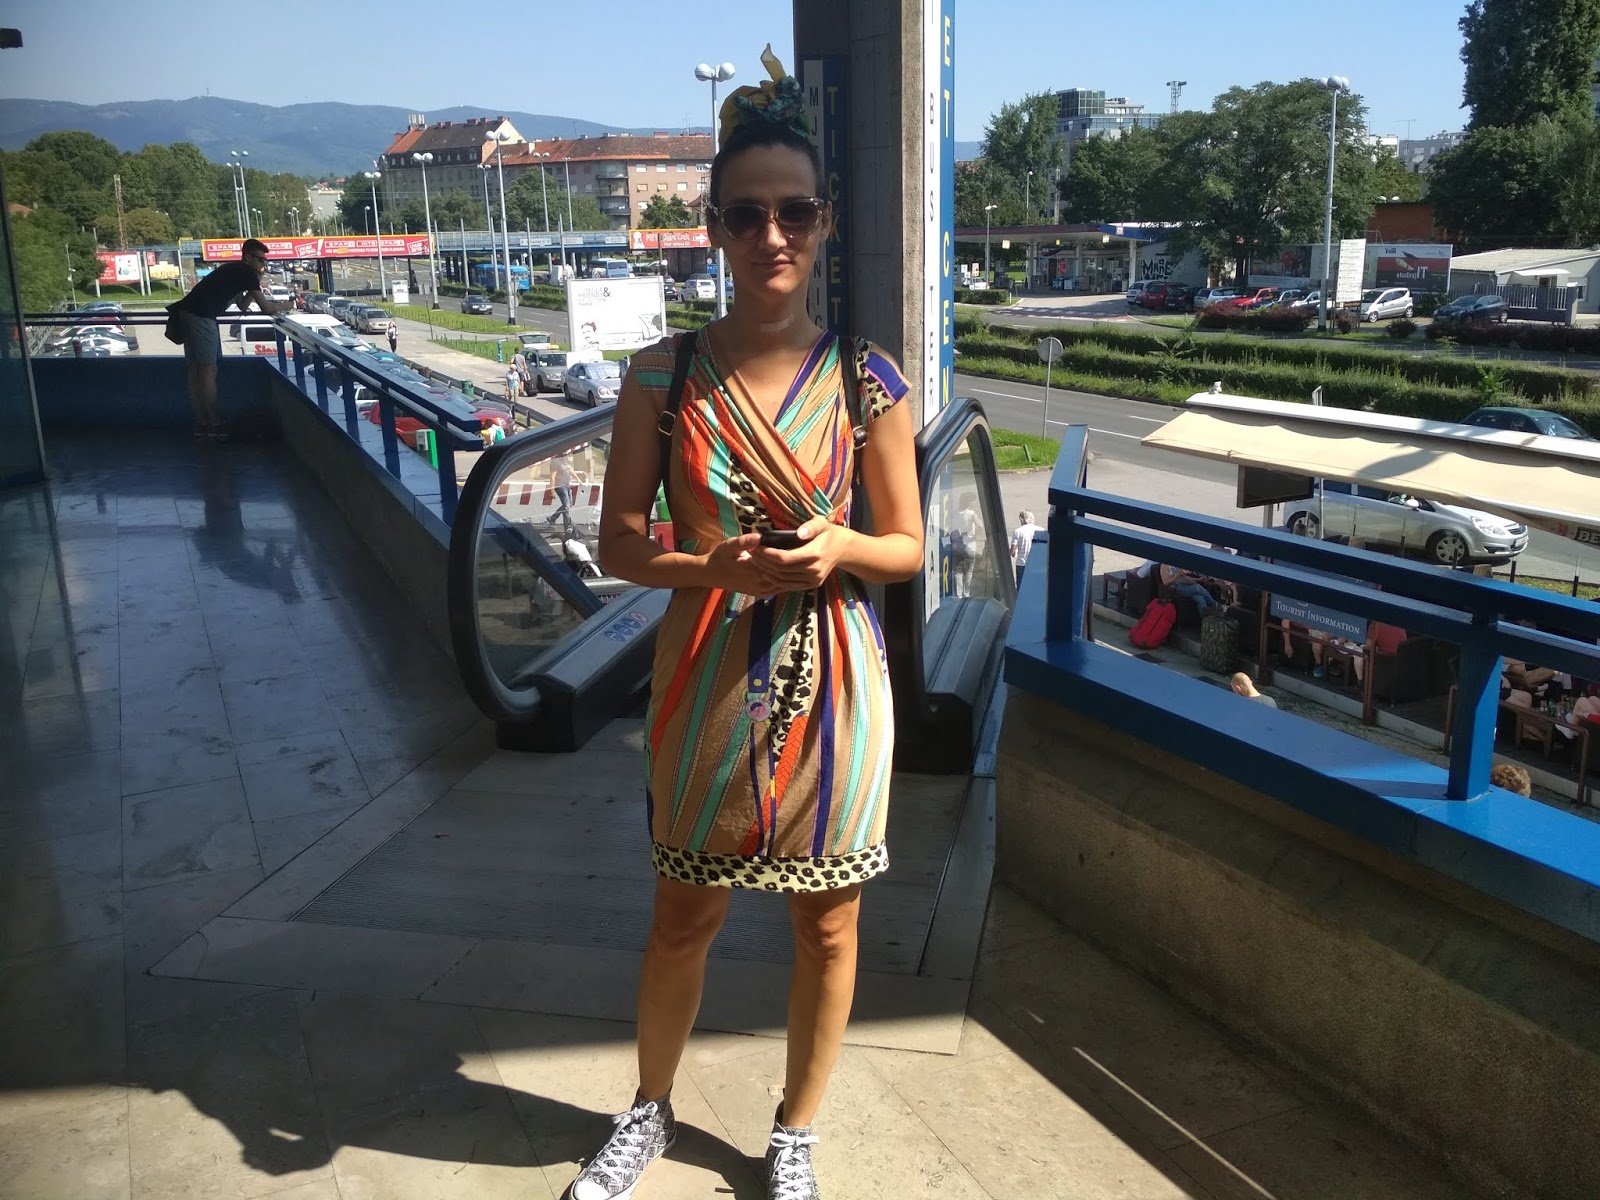 What To Wear When Travelling? A Printed Dress Worn With Sneakers (Travel Outfit Proposal)